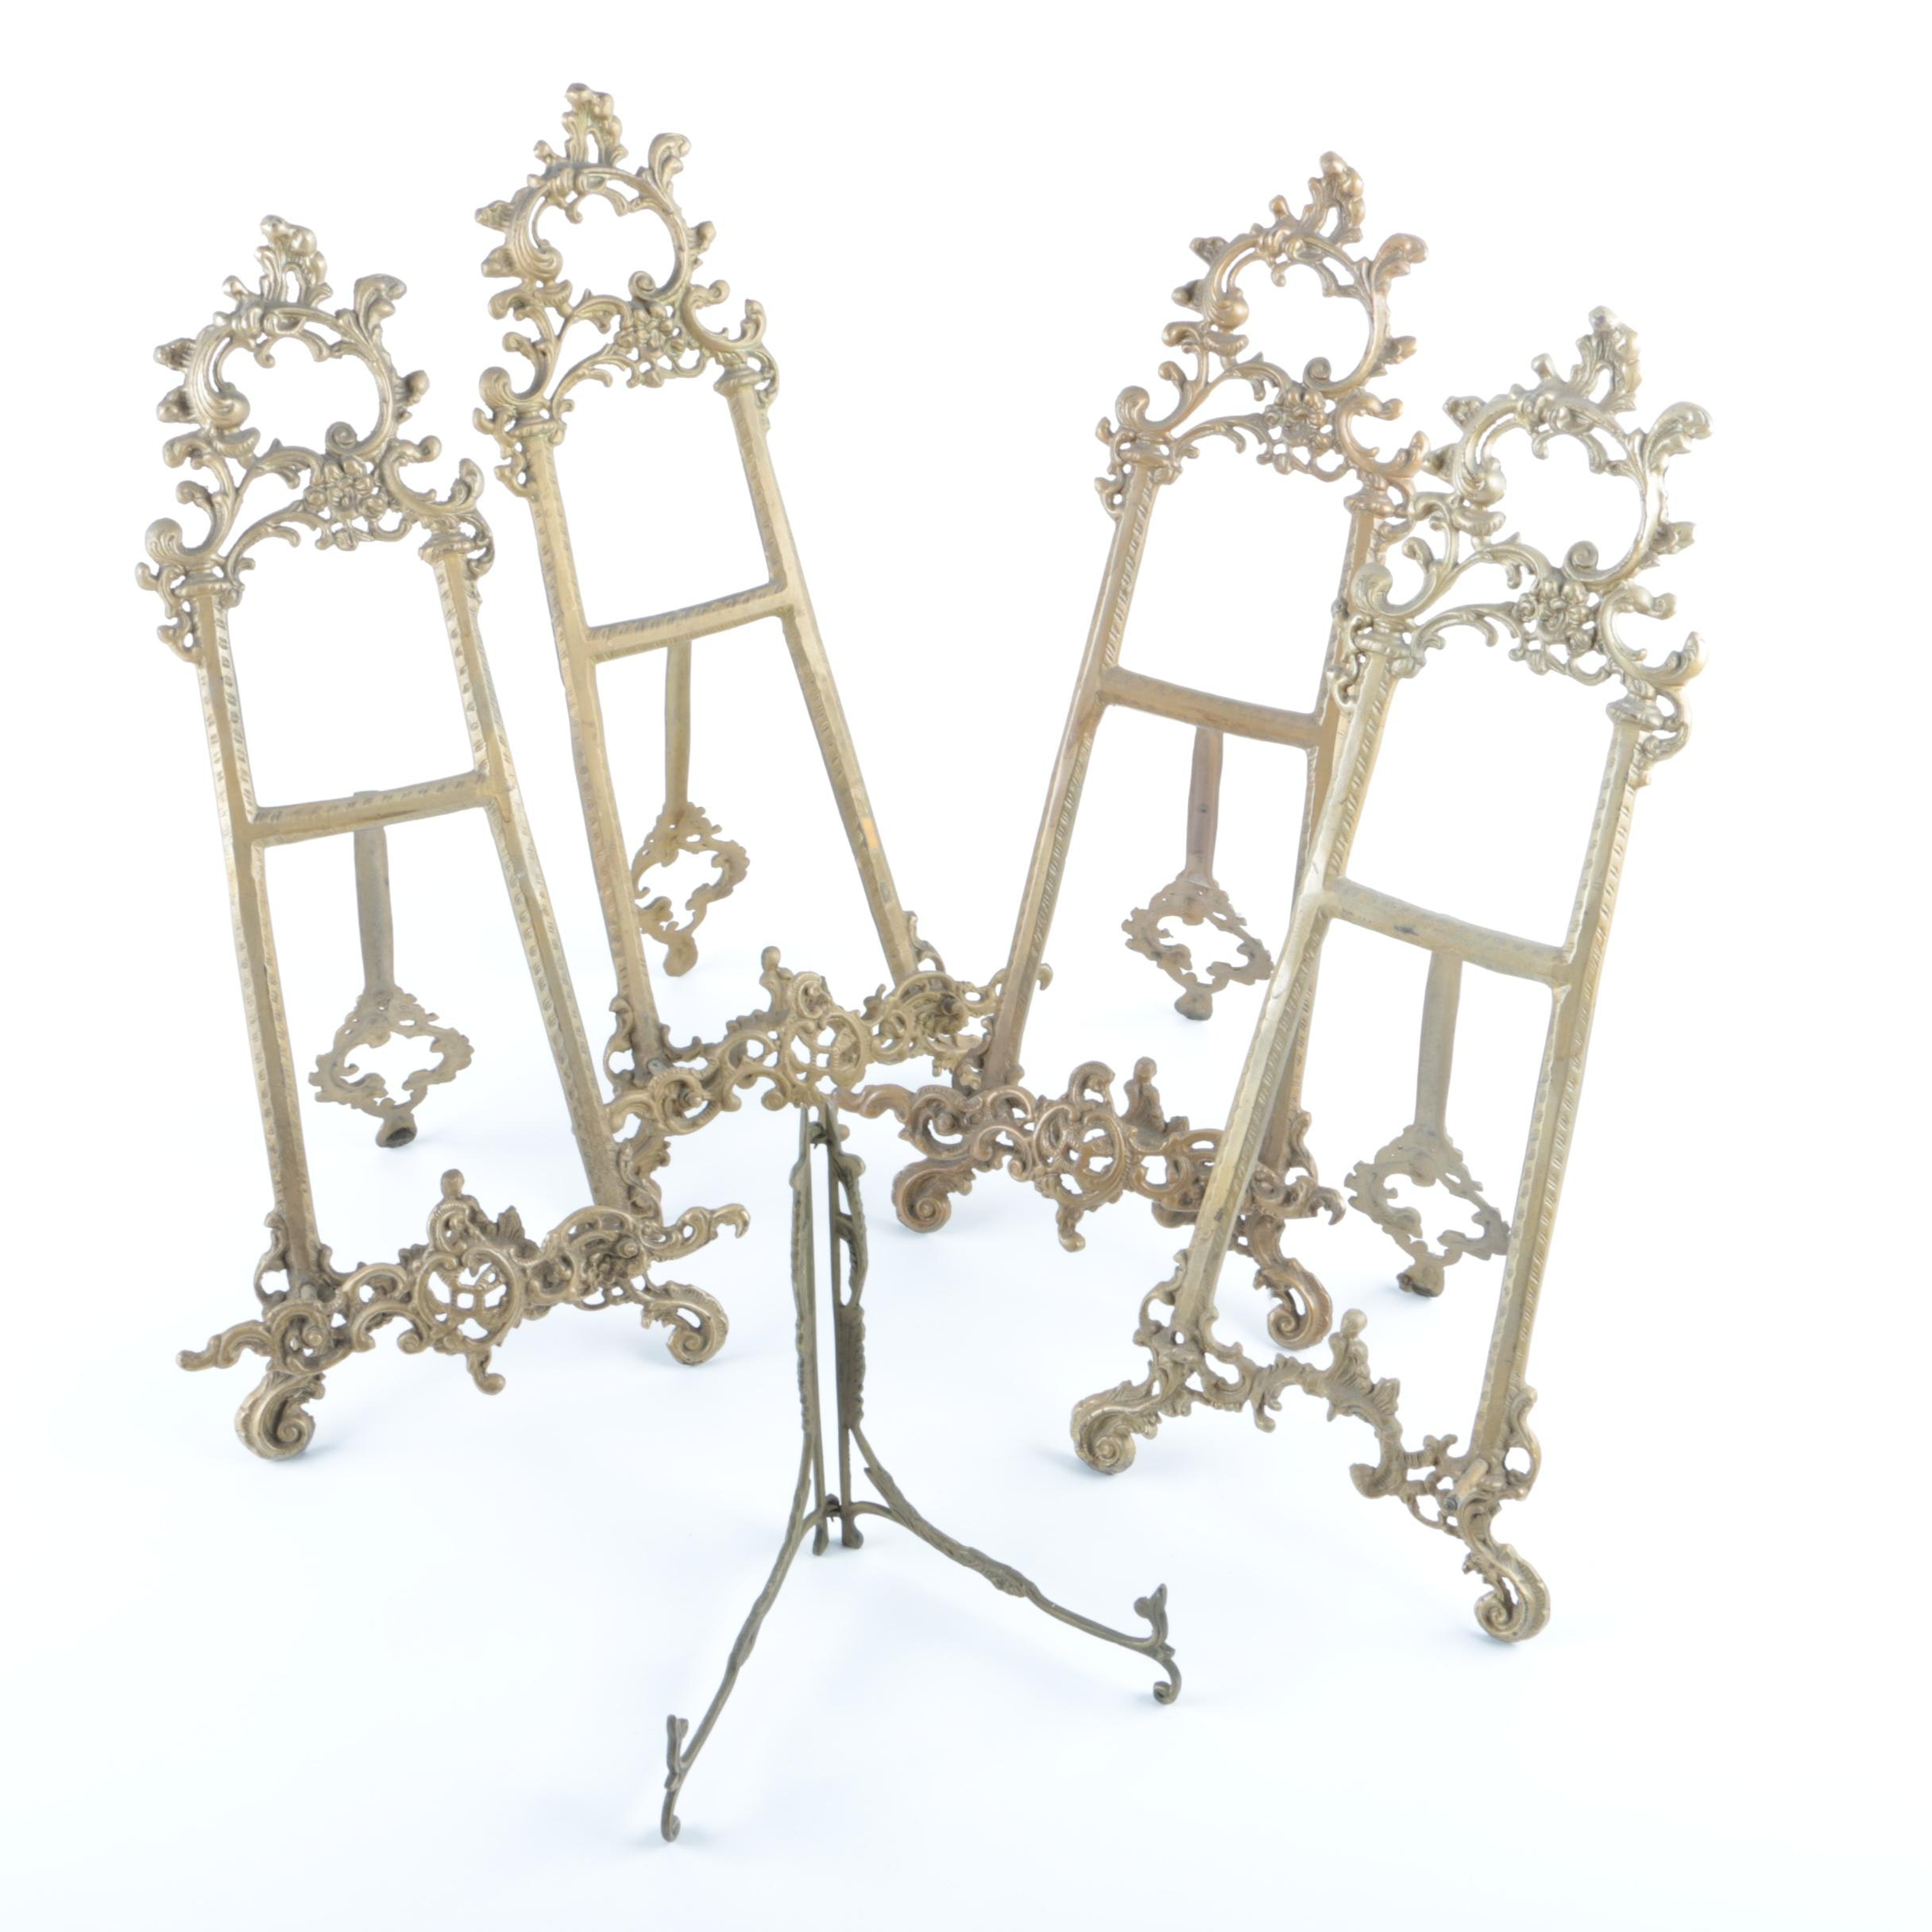 Brass Picture Easels